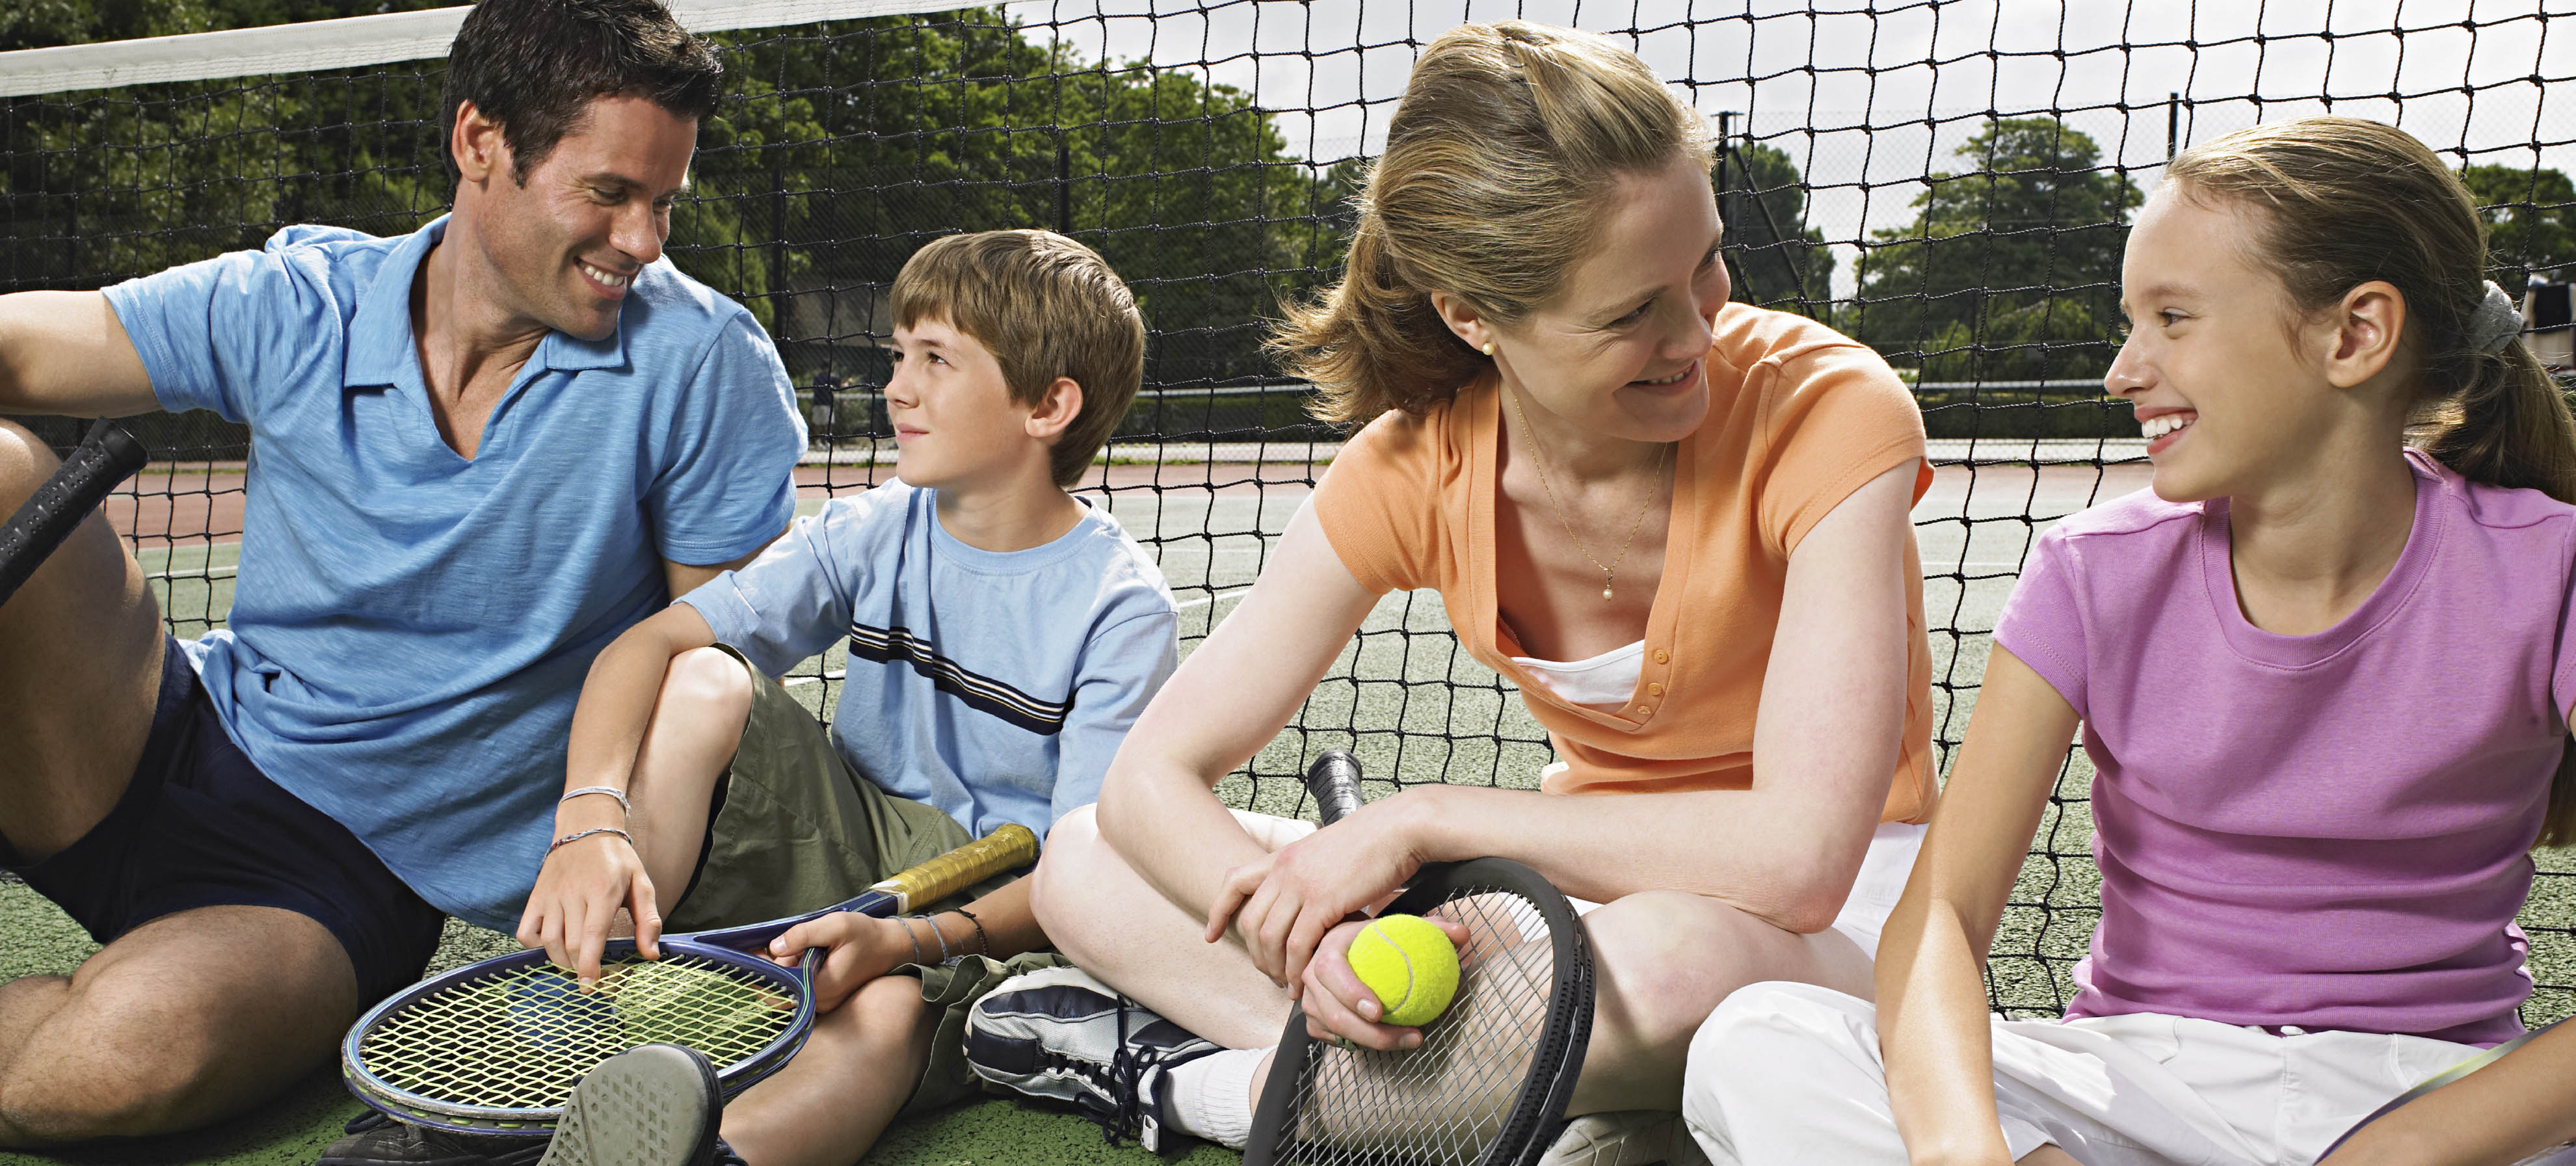 Spend Quality Time With Your Family Playing Tennis